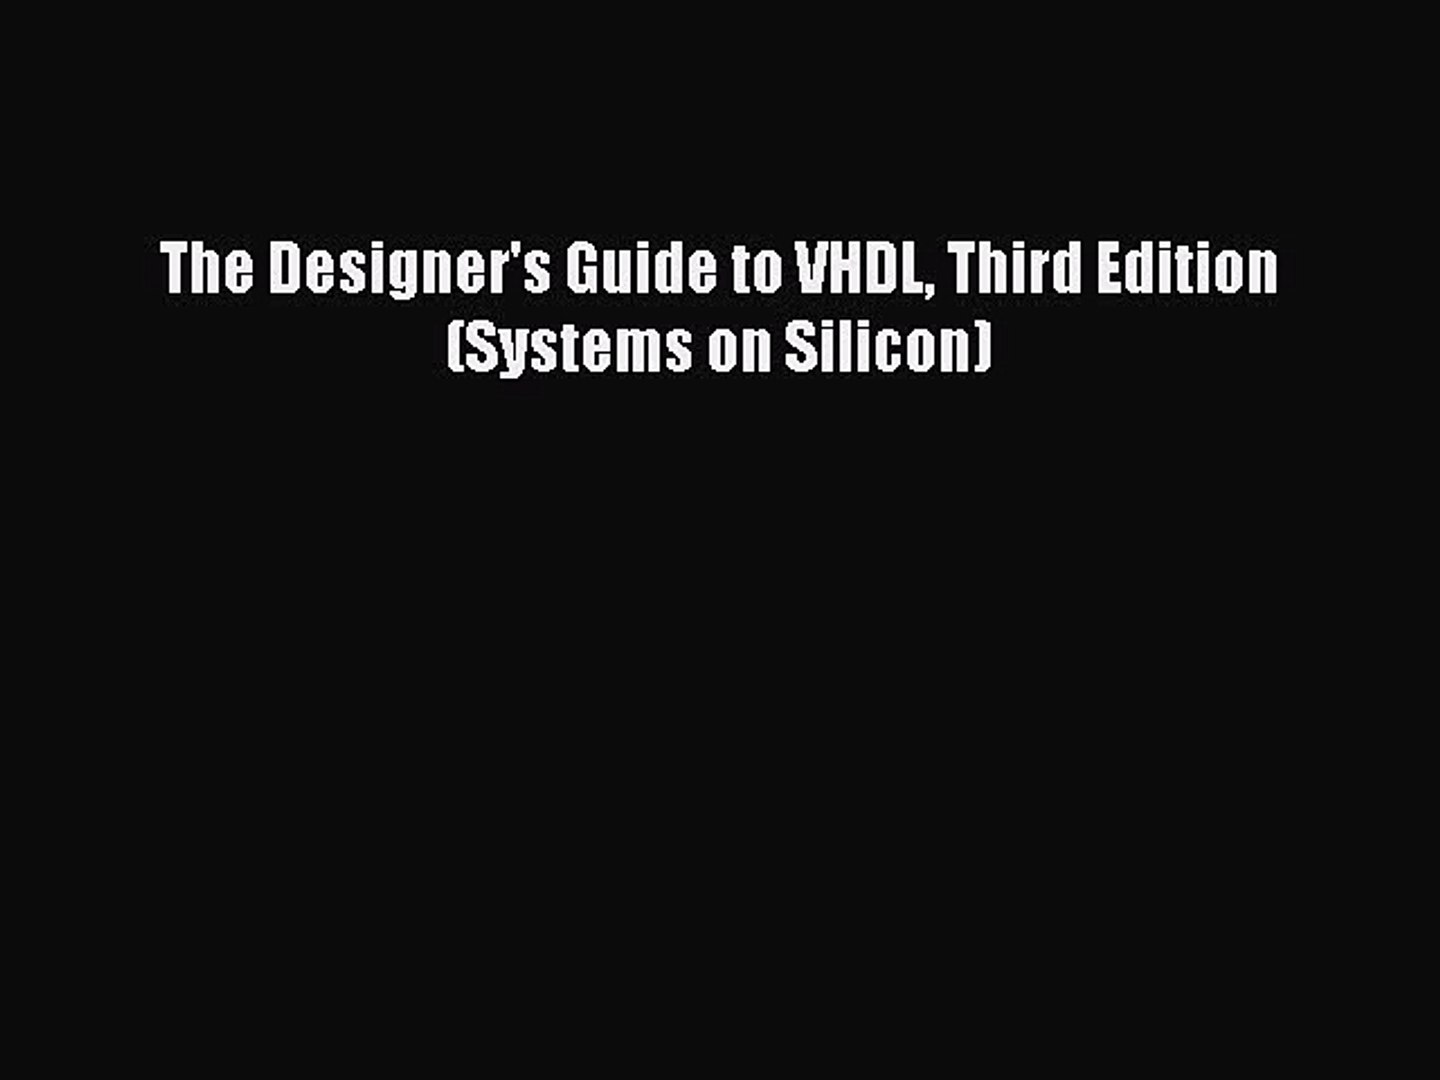 The Designers Guide to VHDL (Systems on Silicon)